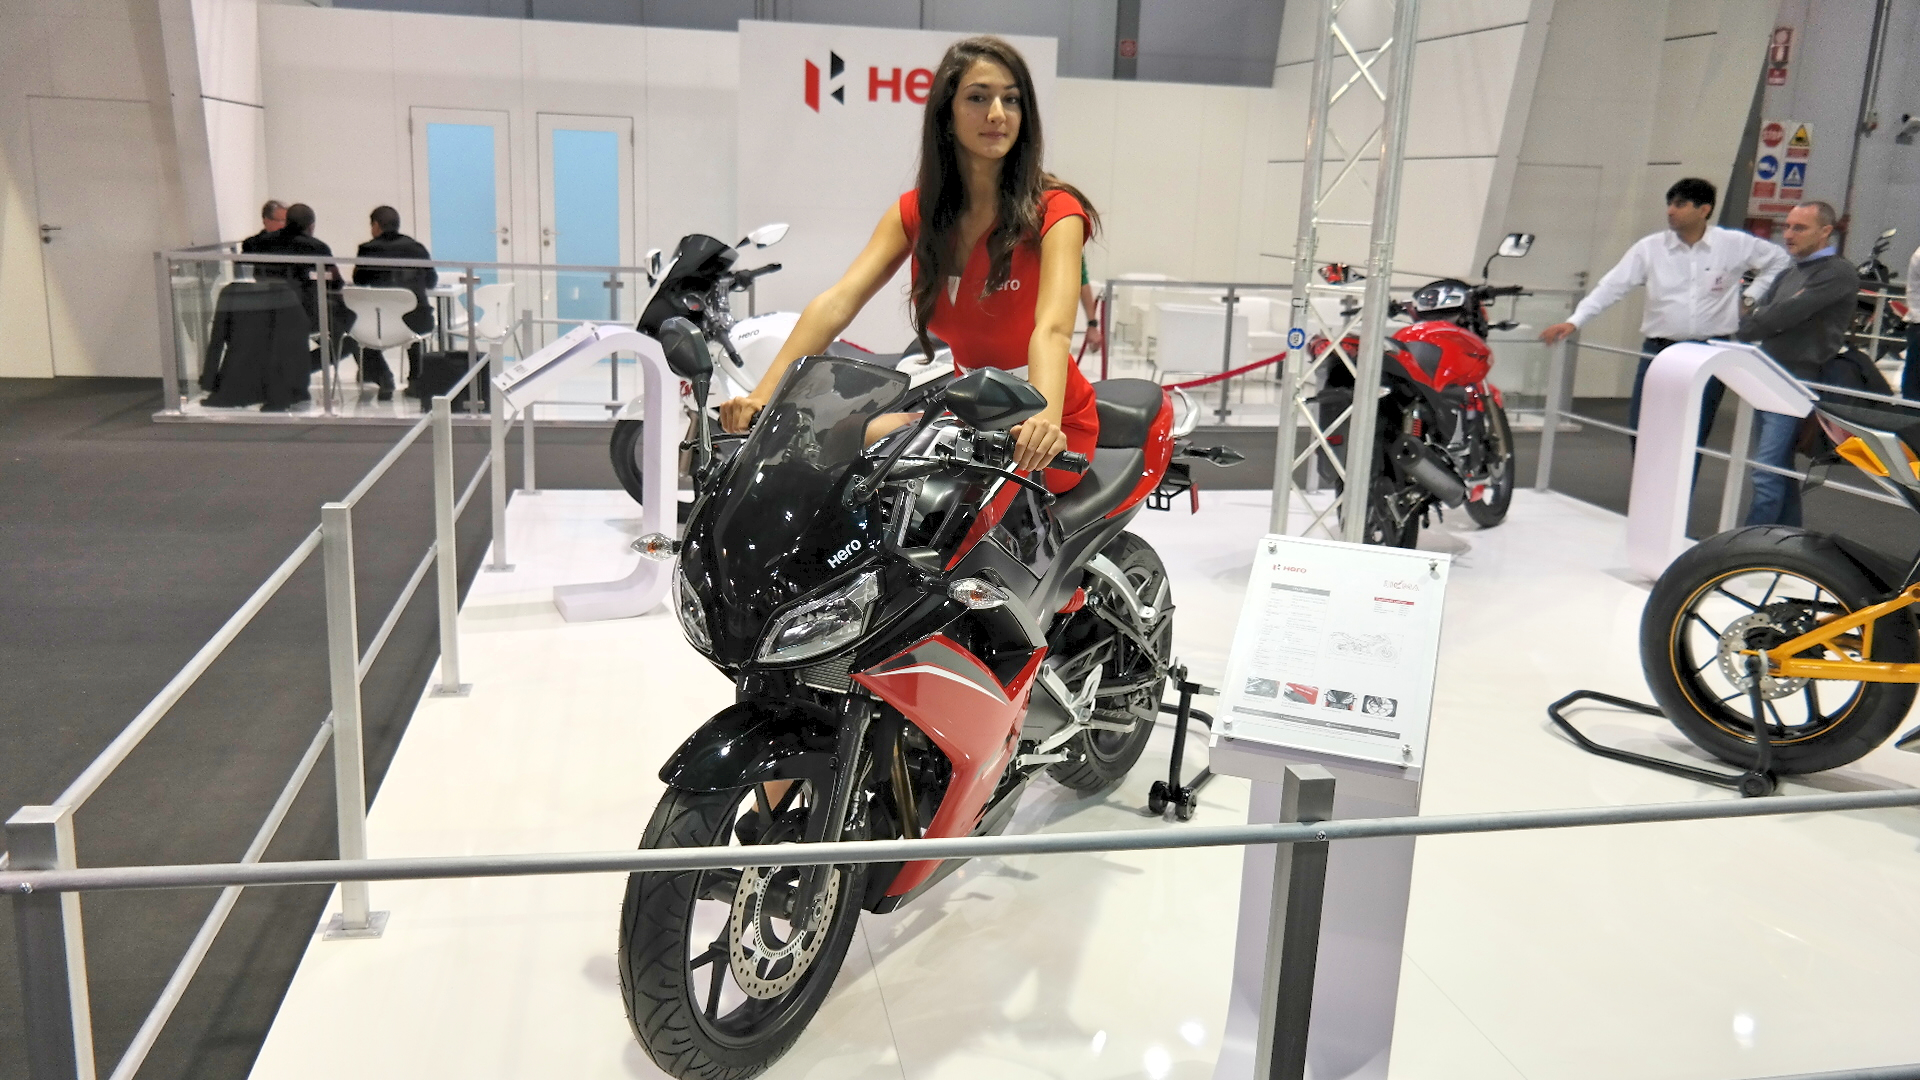 hero wants a piece of the european market with its hx250r at eicma live photos autoevolution. Black Bedroom Furniture Sets. Home Design Ideas